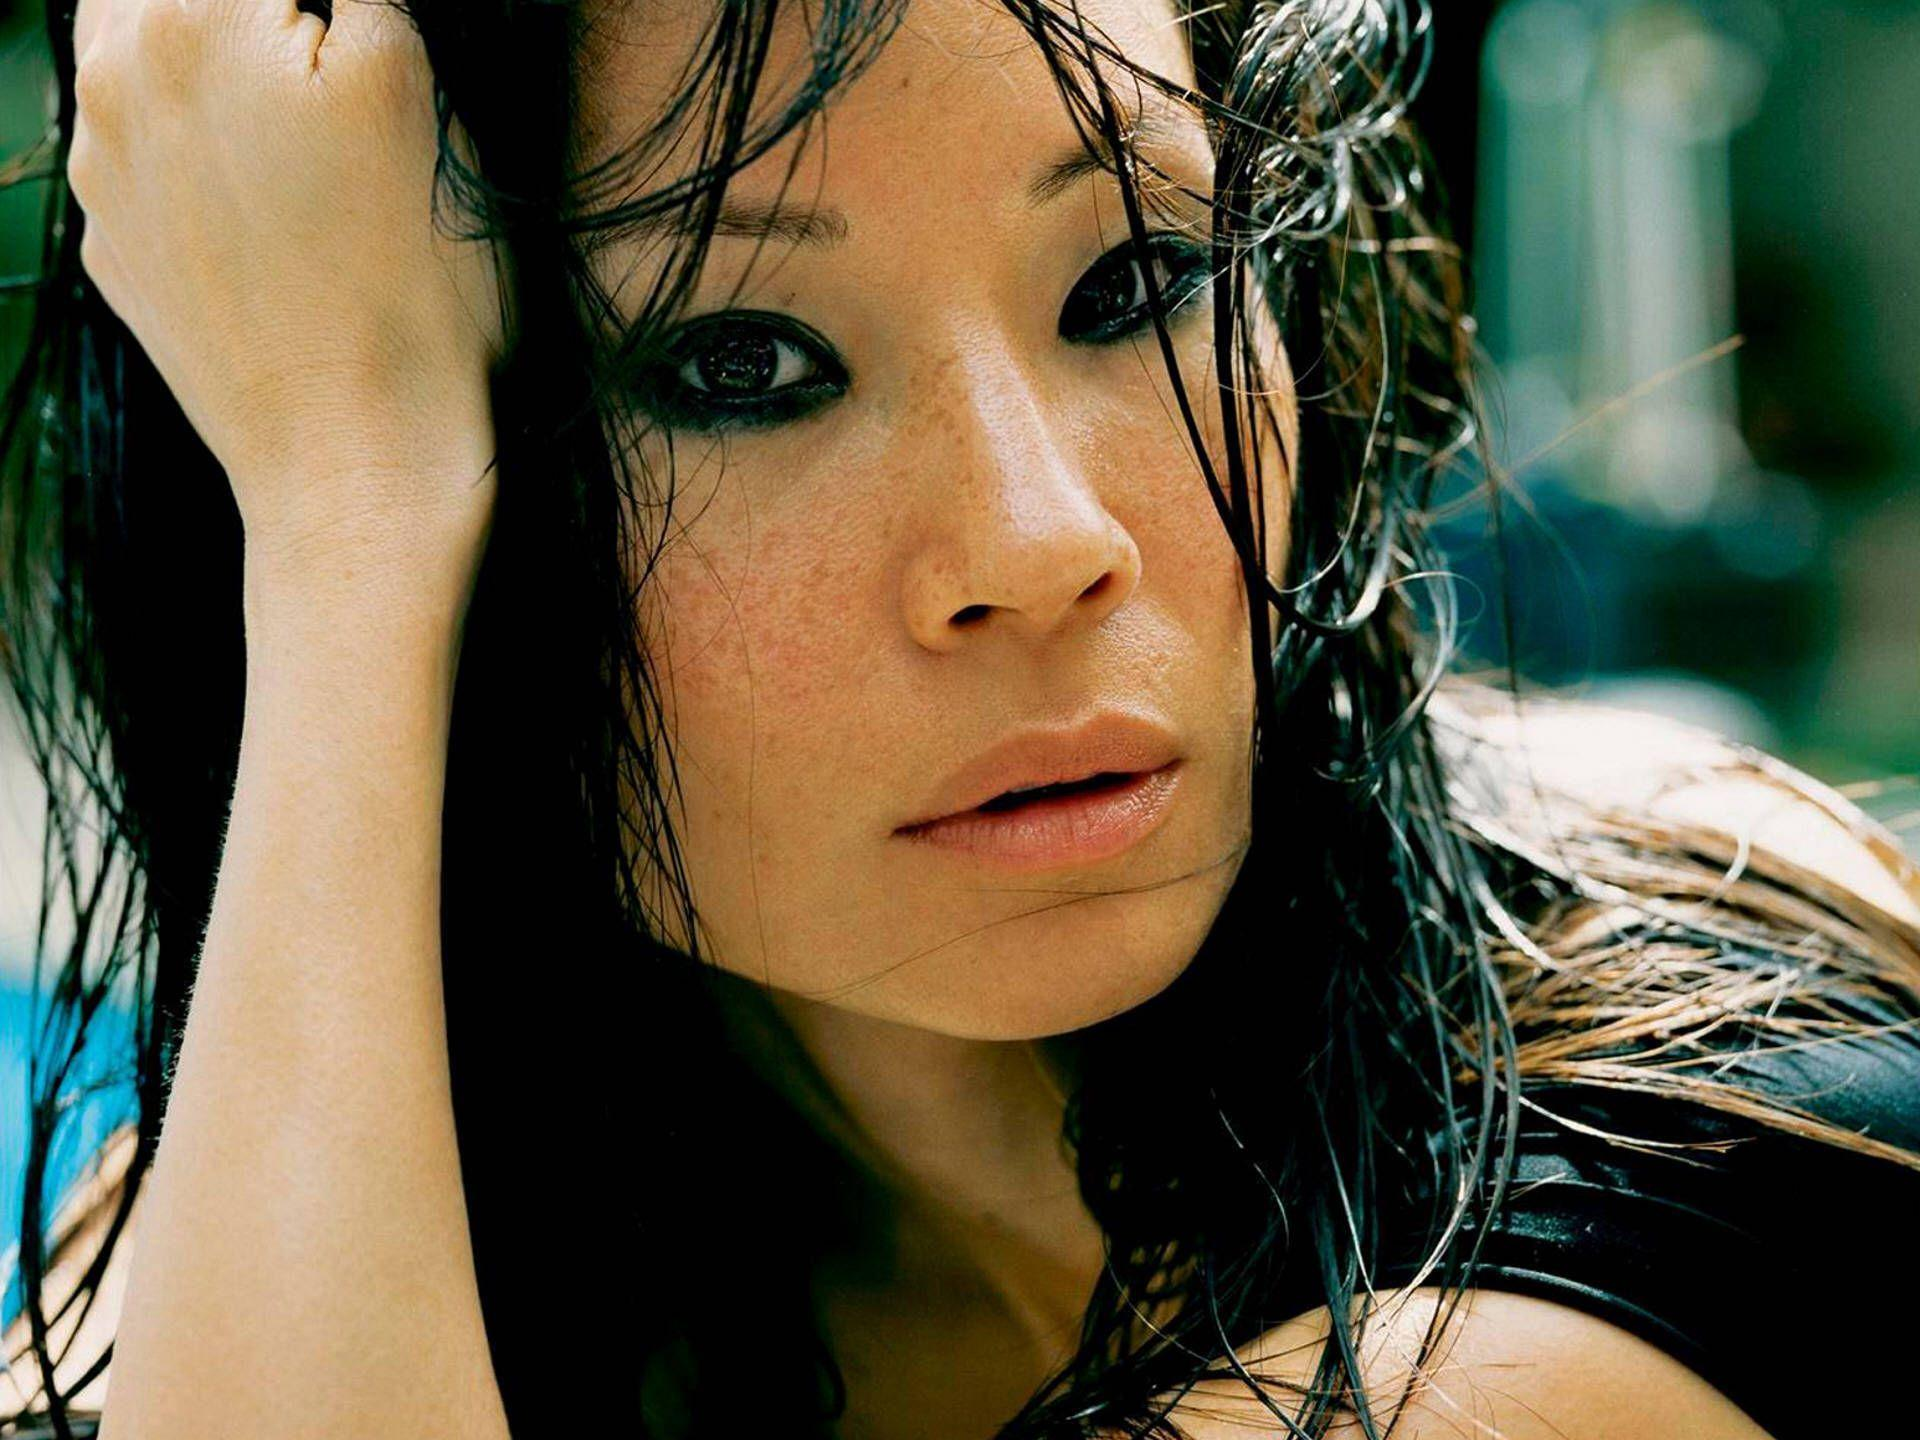 lucy liu free wallpaper - photo #9